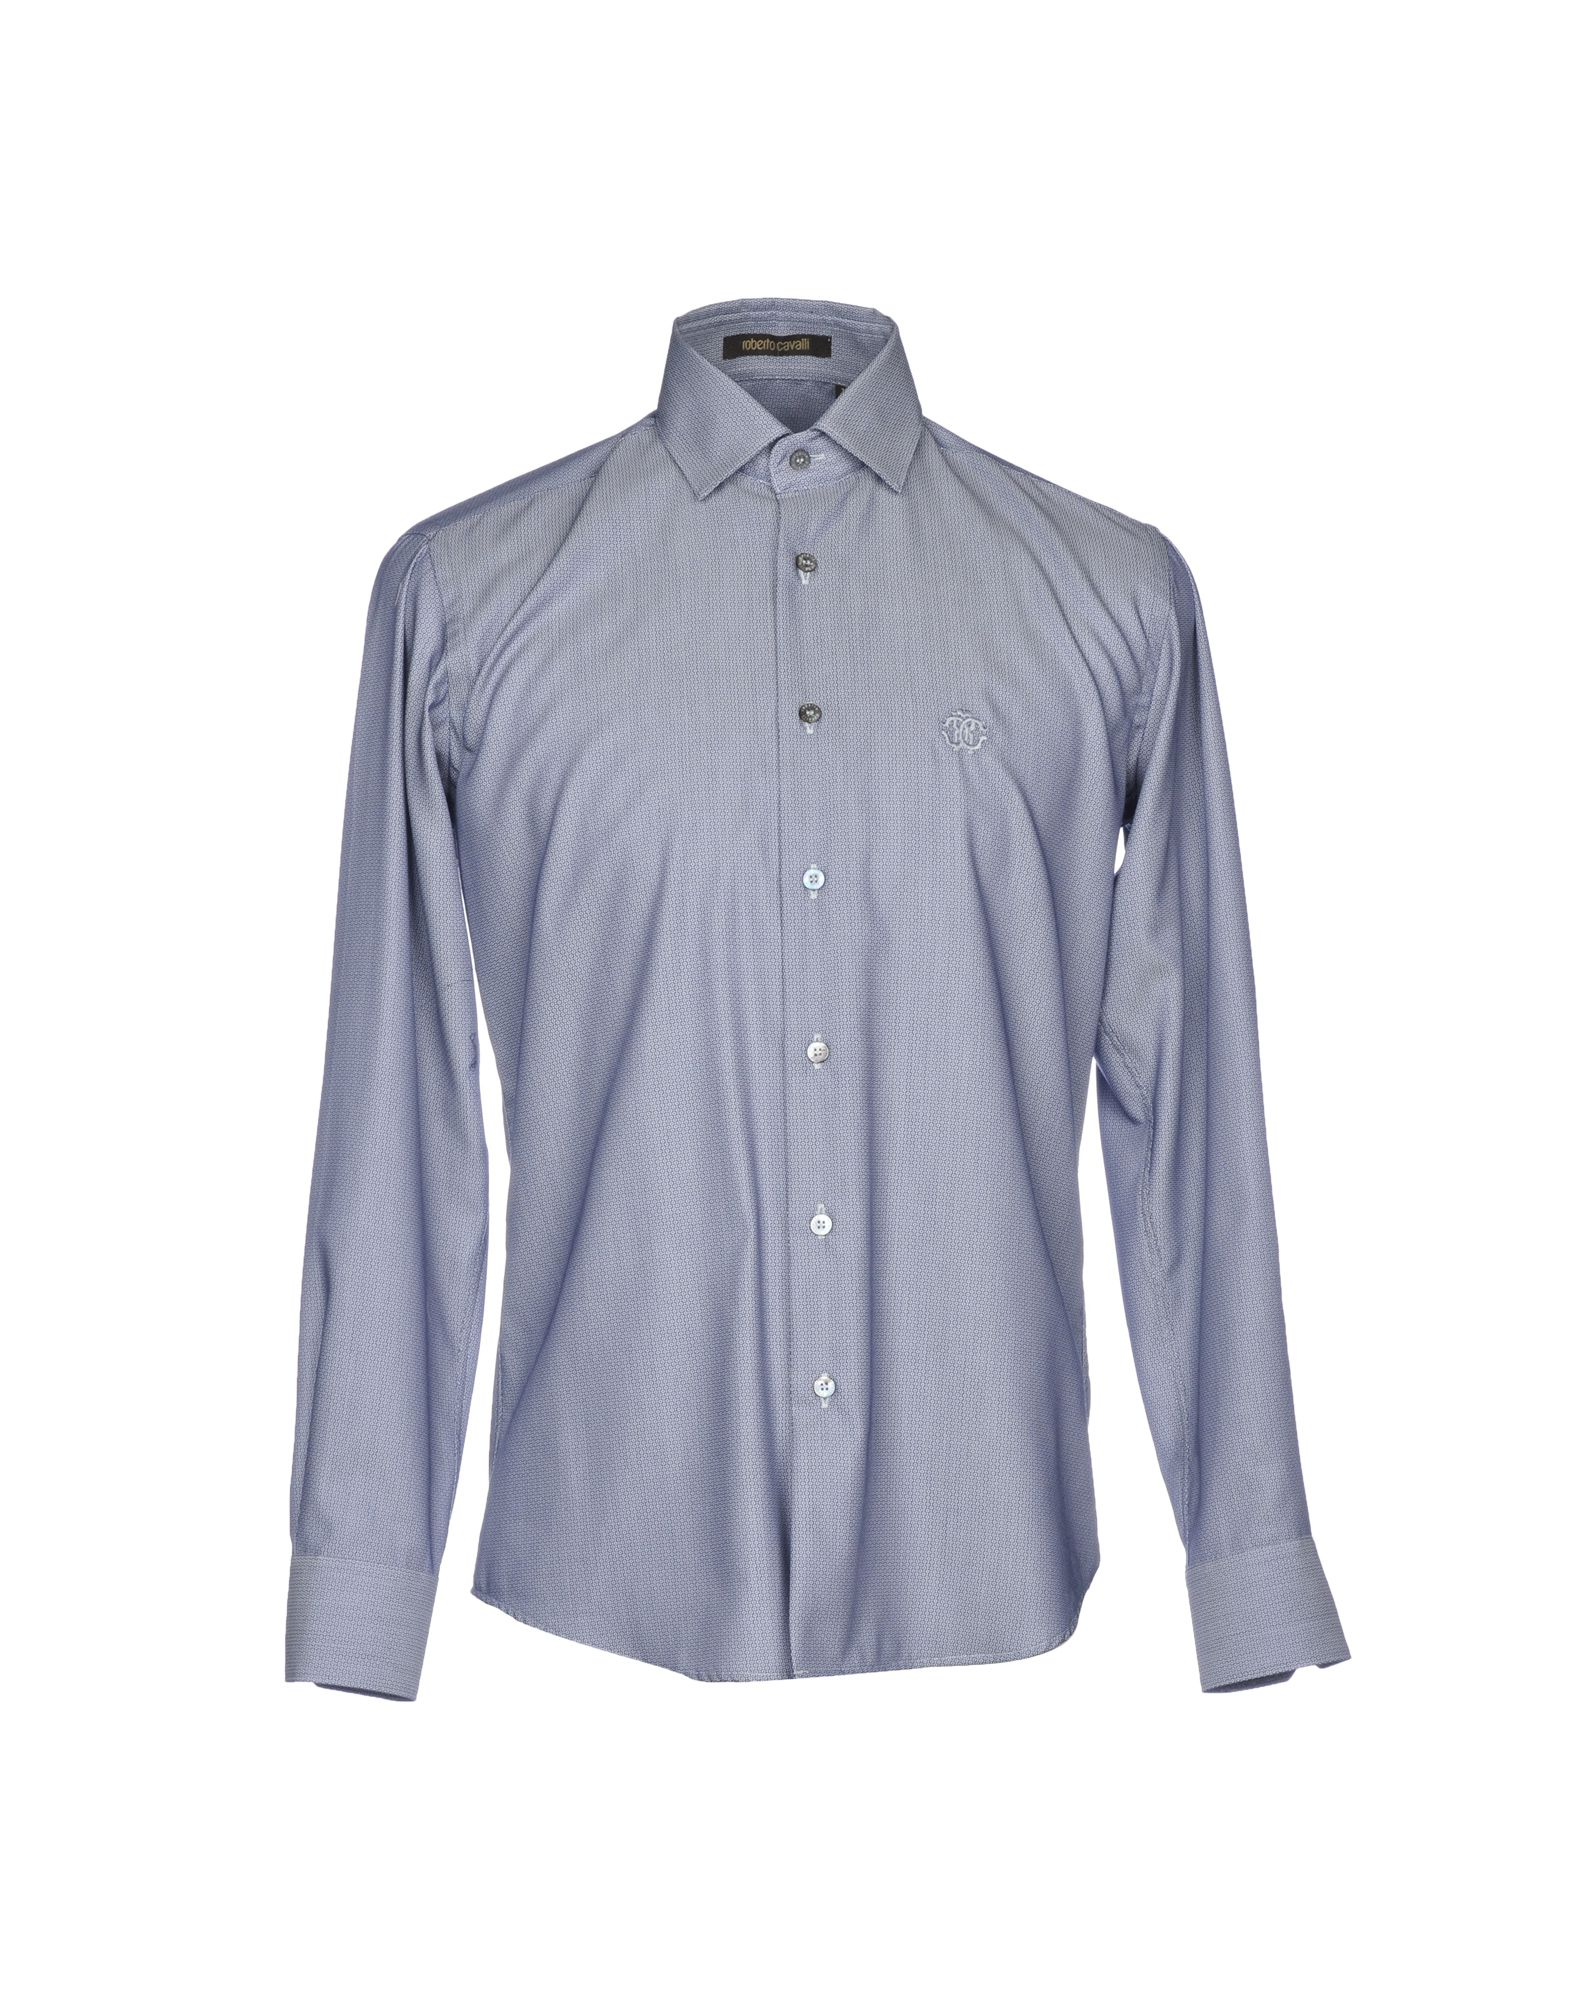 1a123c4e Roberto Cavalli Patterned Shirt - Men Roberto Cavalli Patterned Shirts  online on YOOX United States - 38770444IC